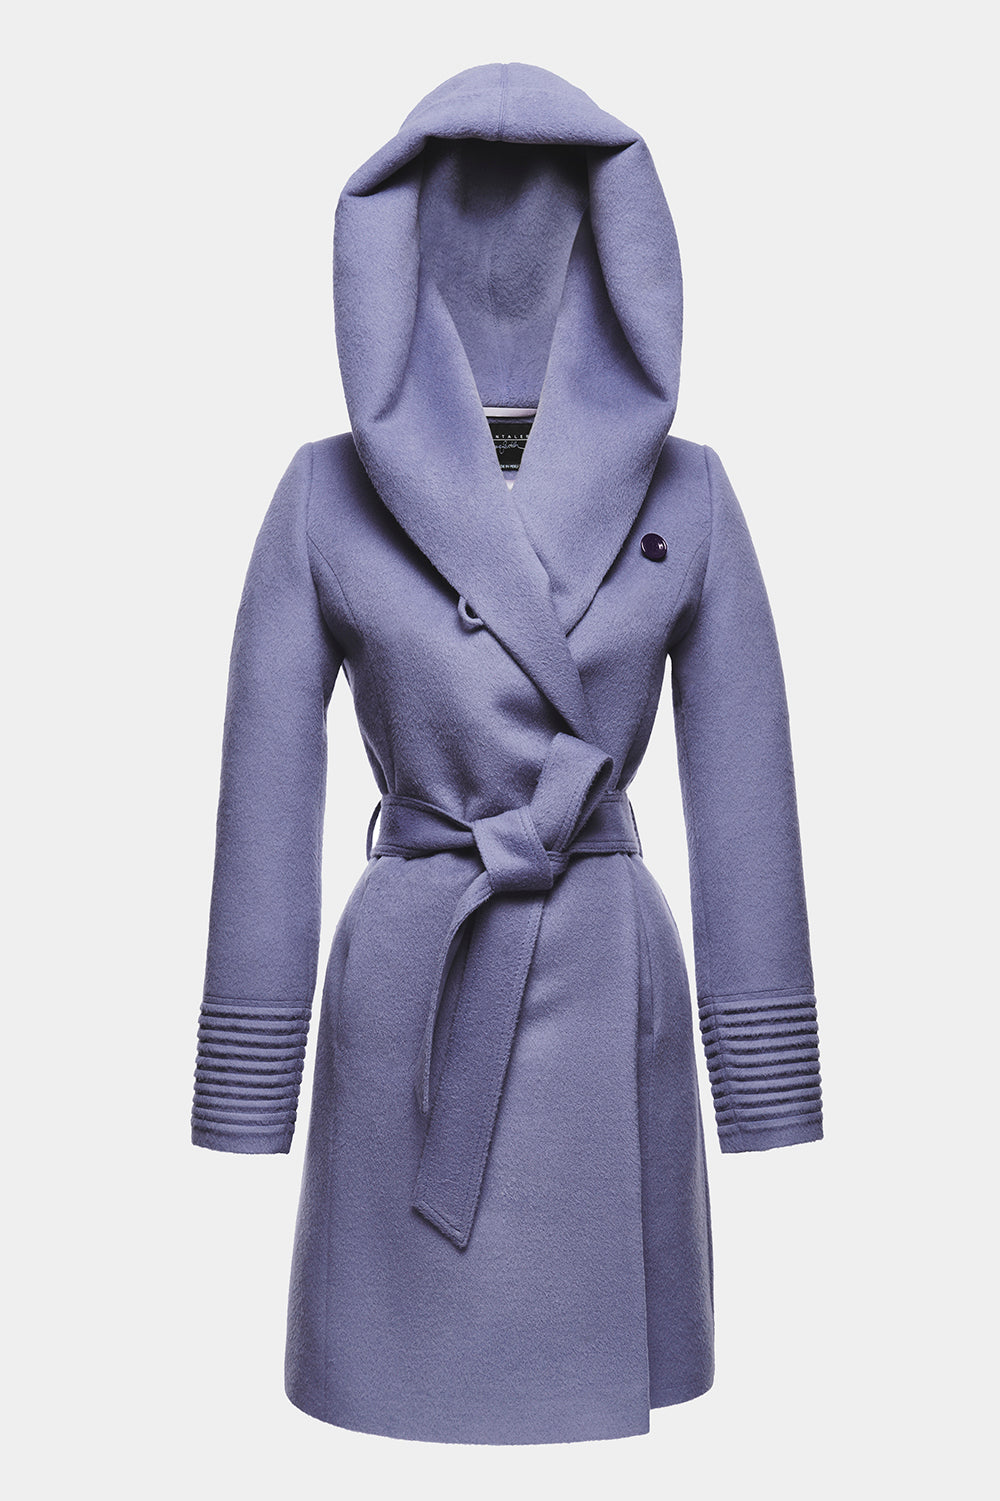 Sentaler Mid Length Hooded Wrap Coat featured in Baby Alpaca and available in Lilac. Seen off model.